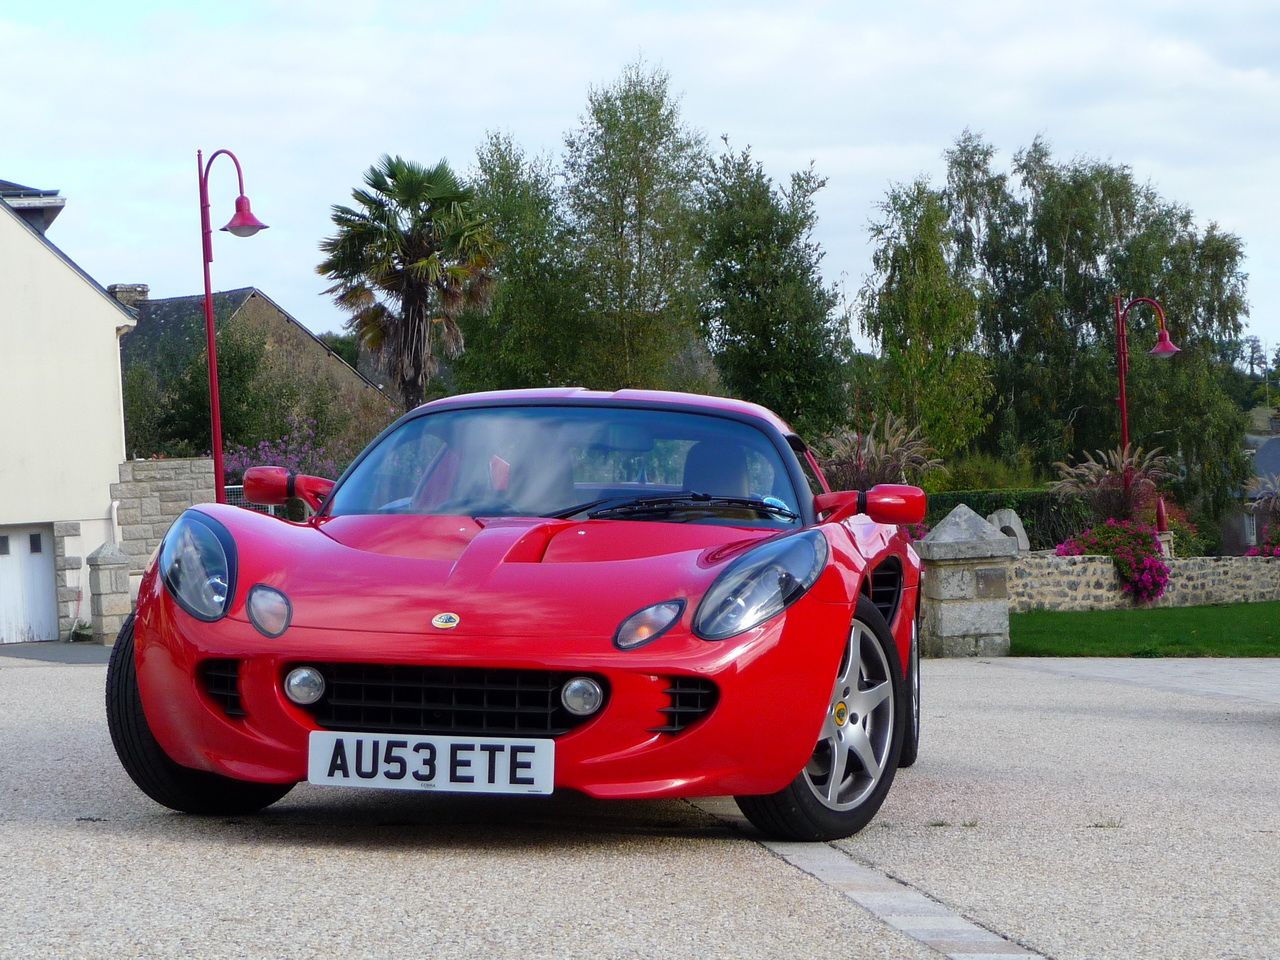 lotus elise s2 occasion ardent red 120 cv